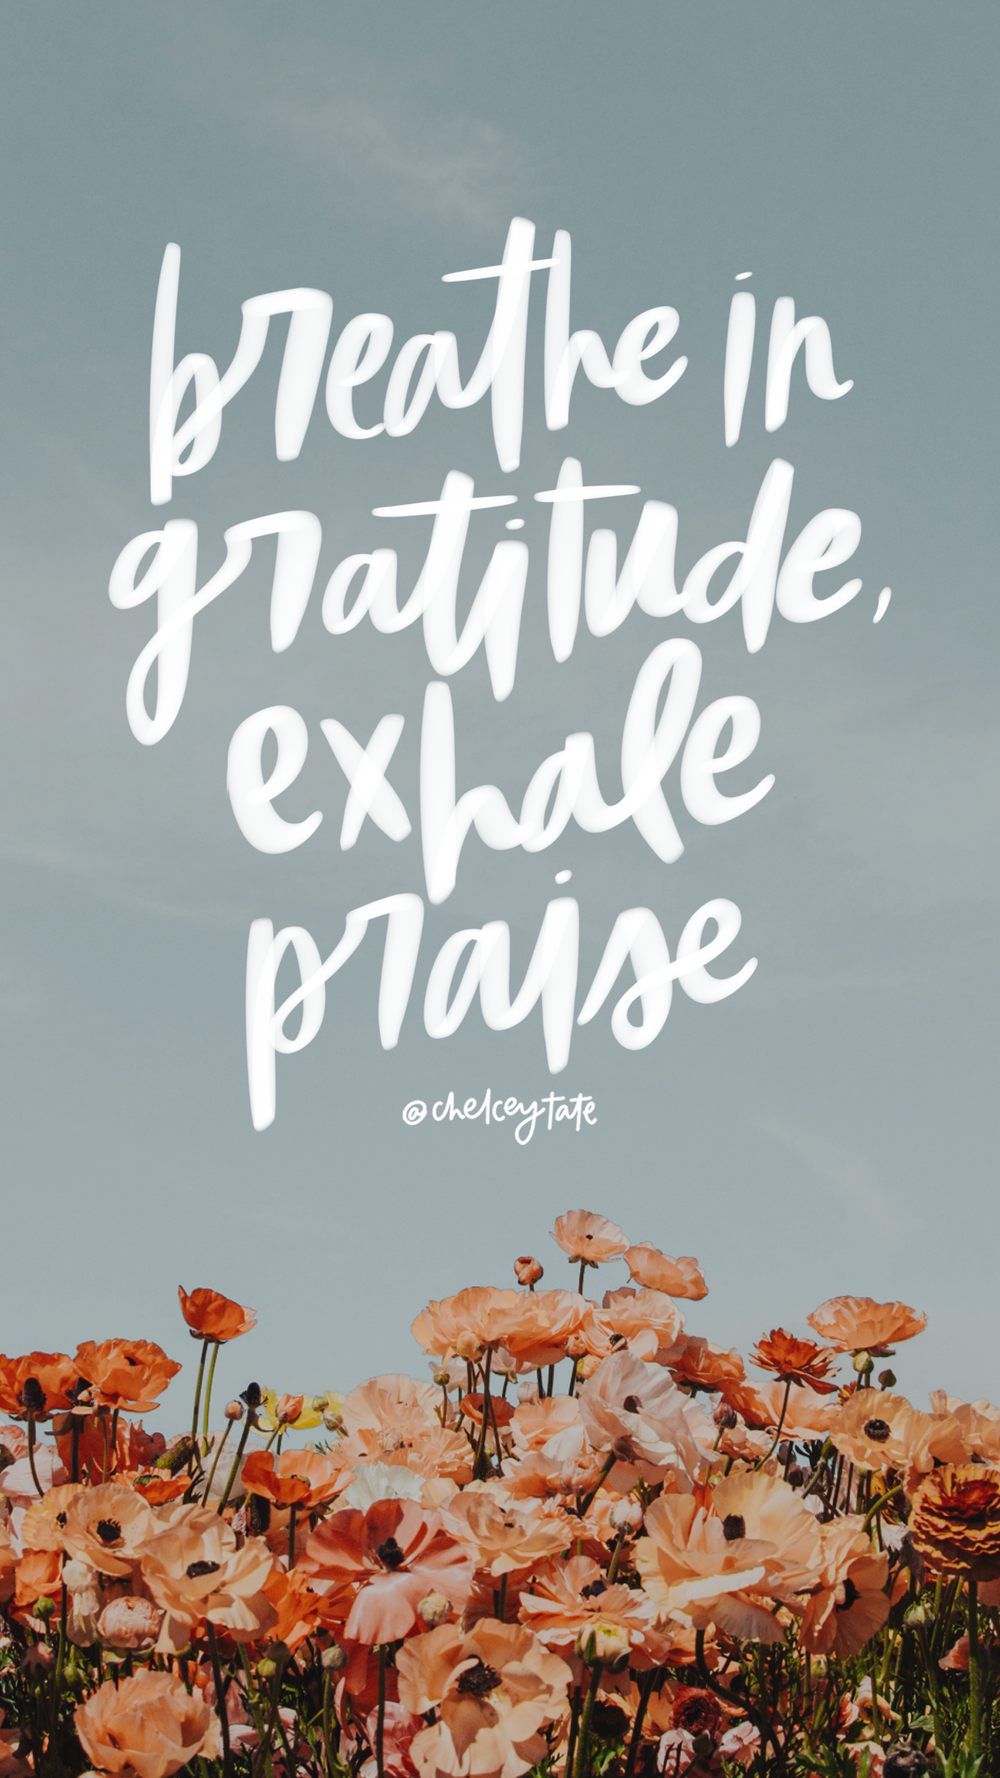 Breath In Gratitude, Exhale Praise Daily Love Note by Chelcey Tate via chelceytate.com